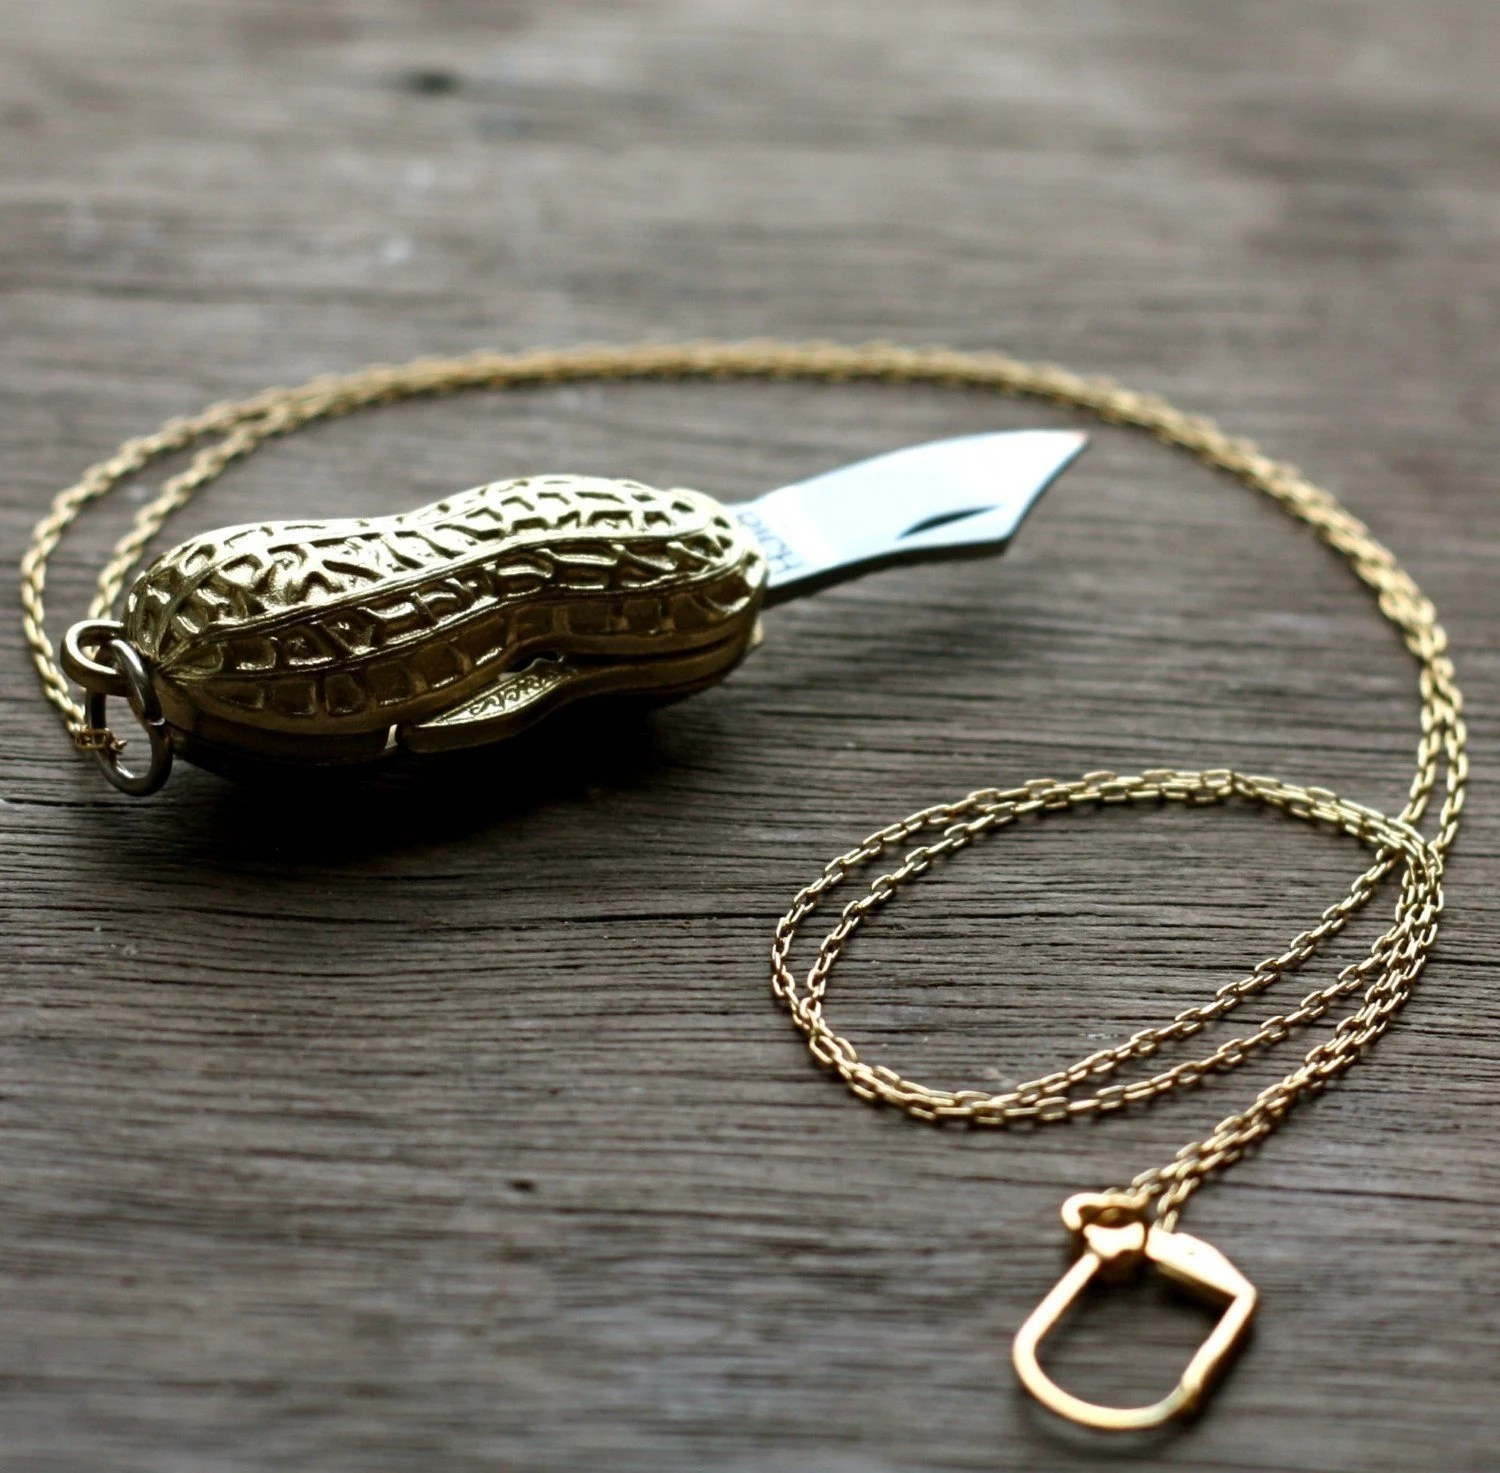 Peanut Pocket Knife Necklace Gold Goober Folding Blade